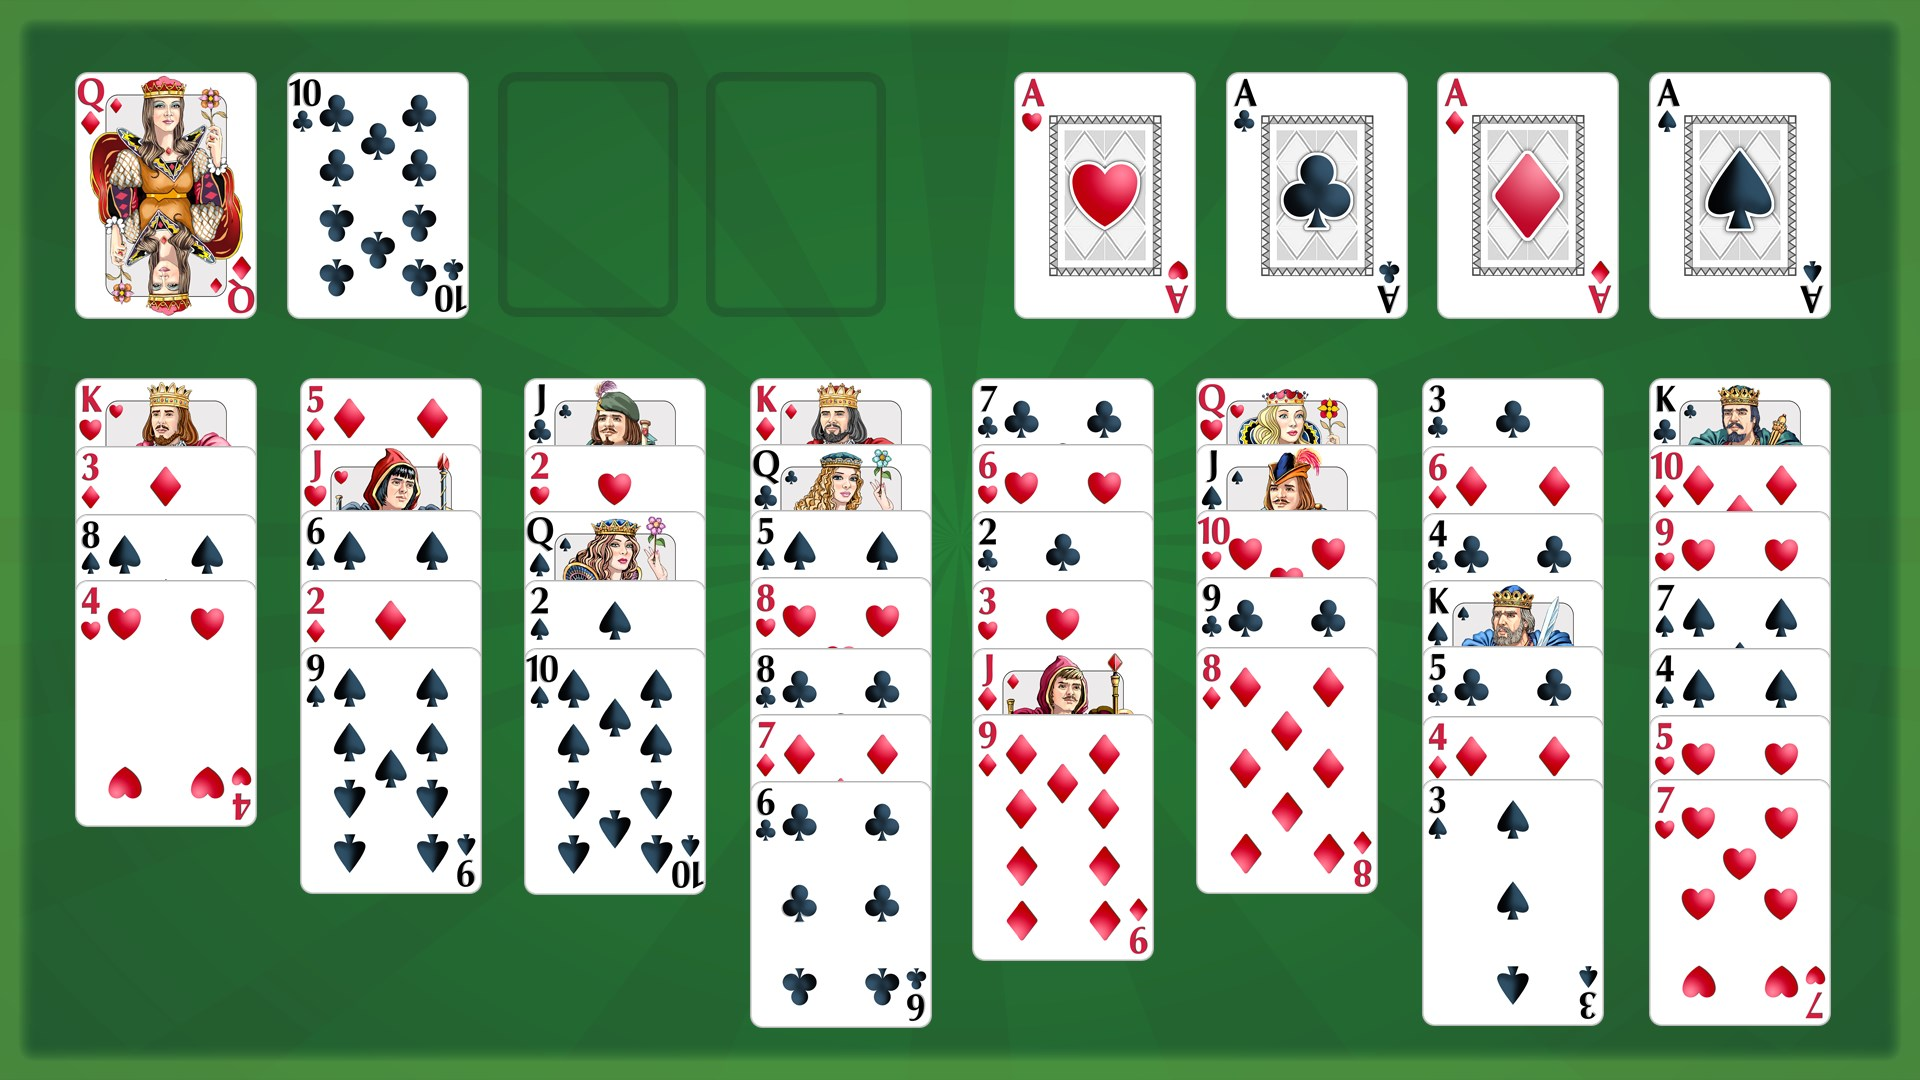 Free freecell solitaire screenshot windows 8 downloads.